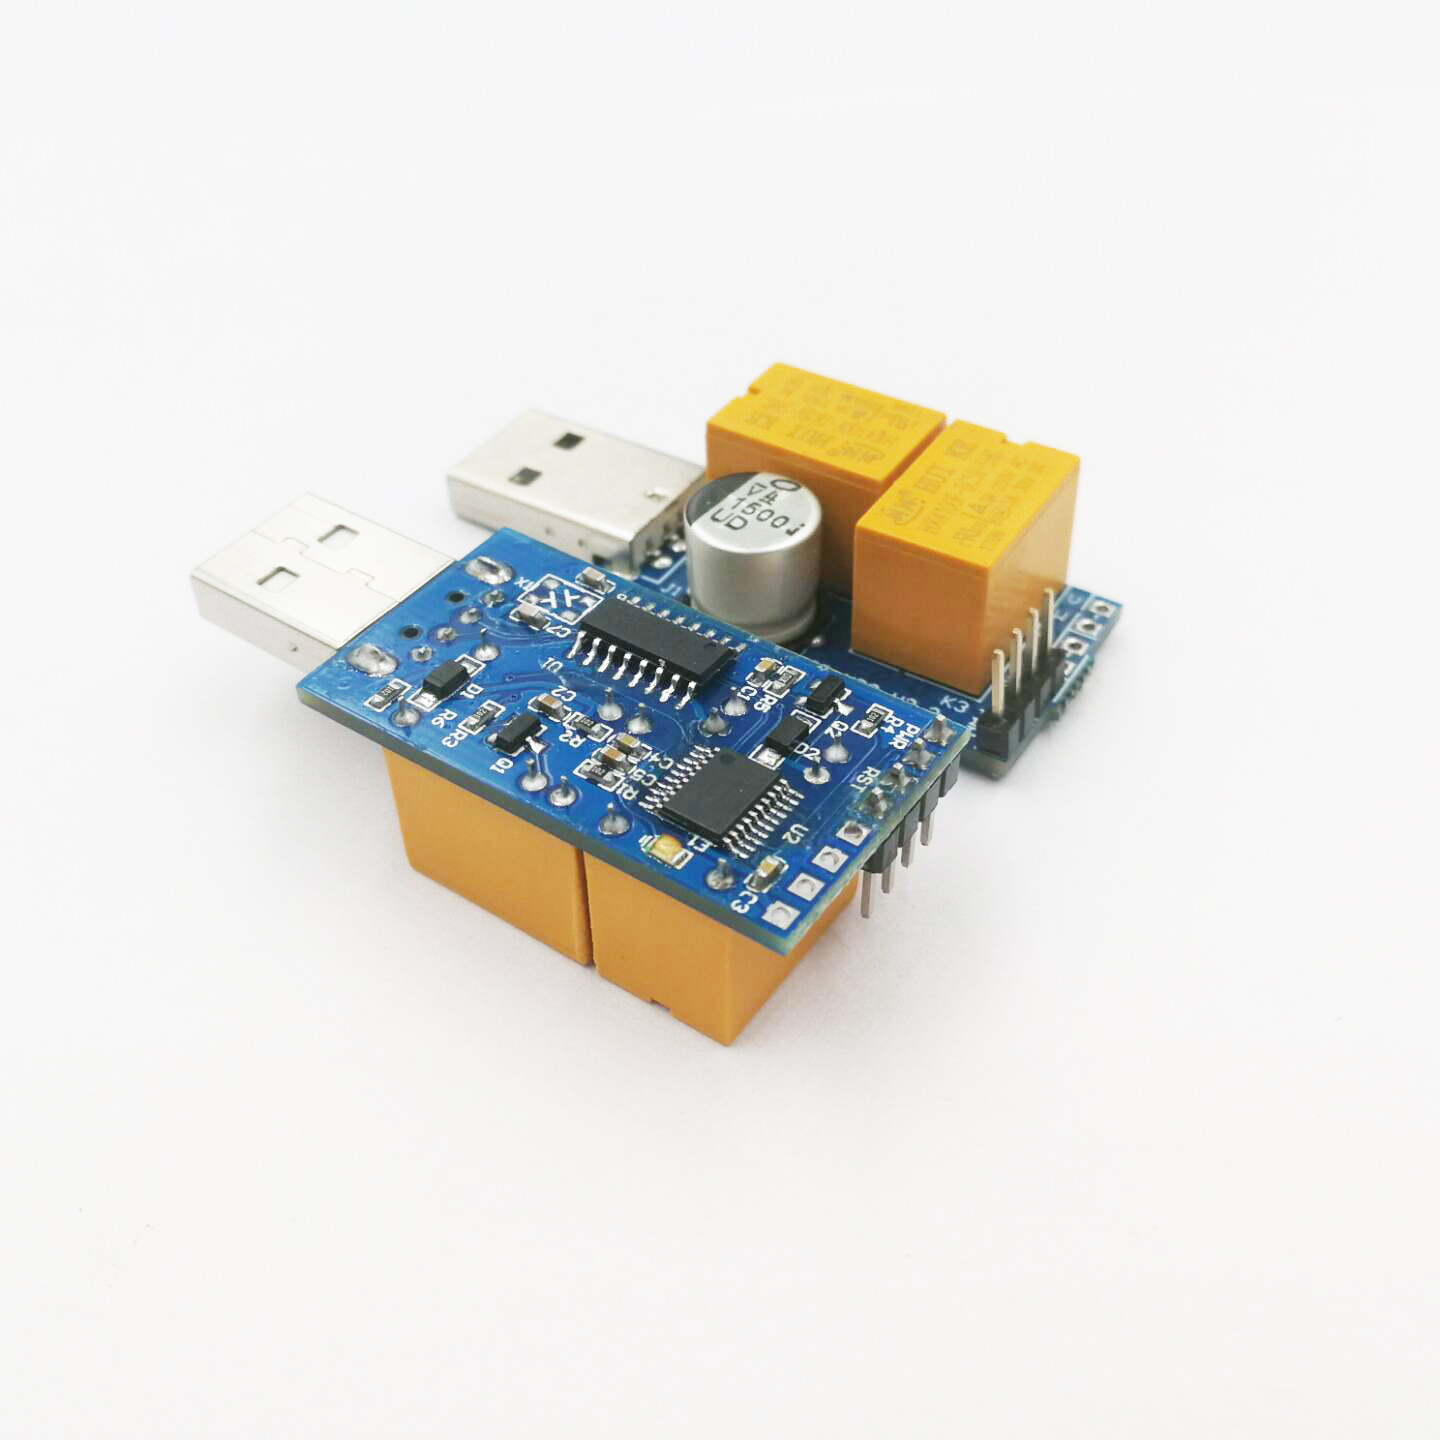 Usb Watchdog Timer Card Module Automatic Restart Ip Electronic Circuit Diagram 1 X Cable